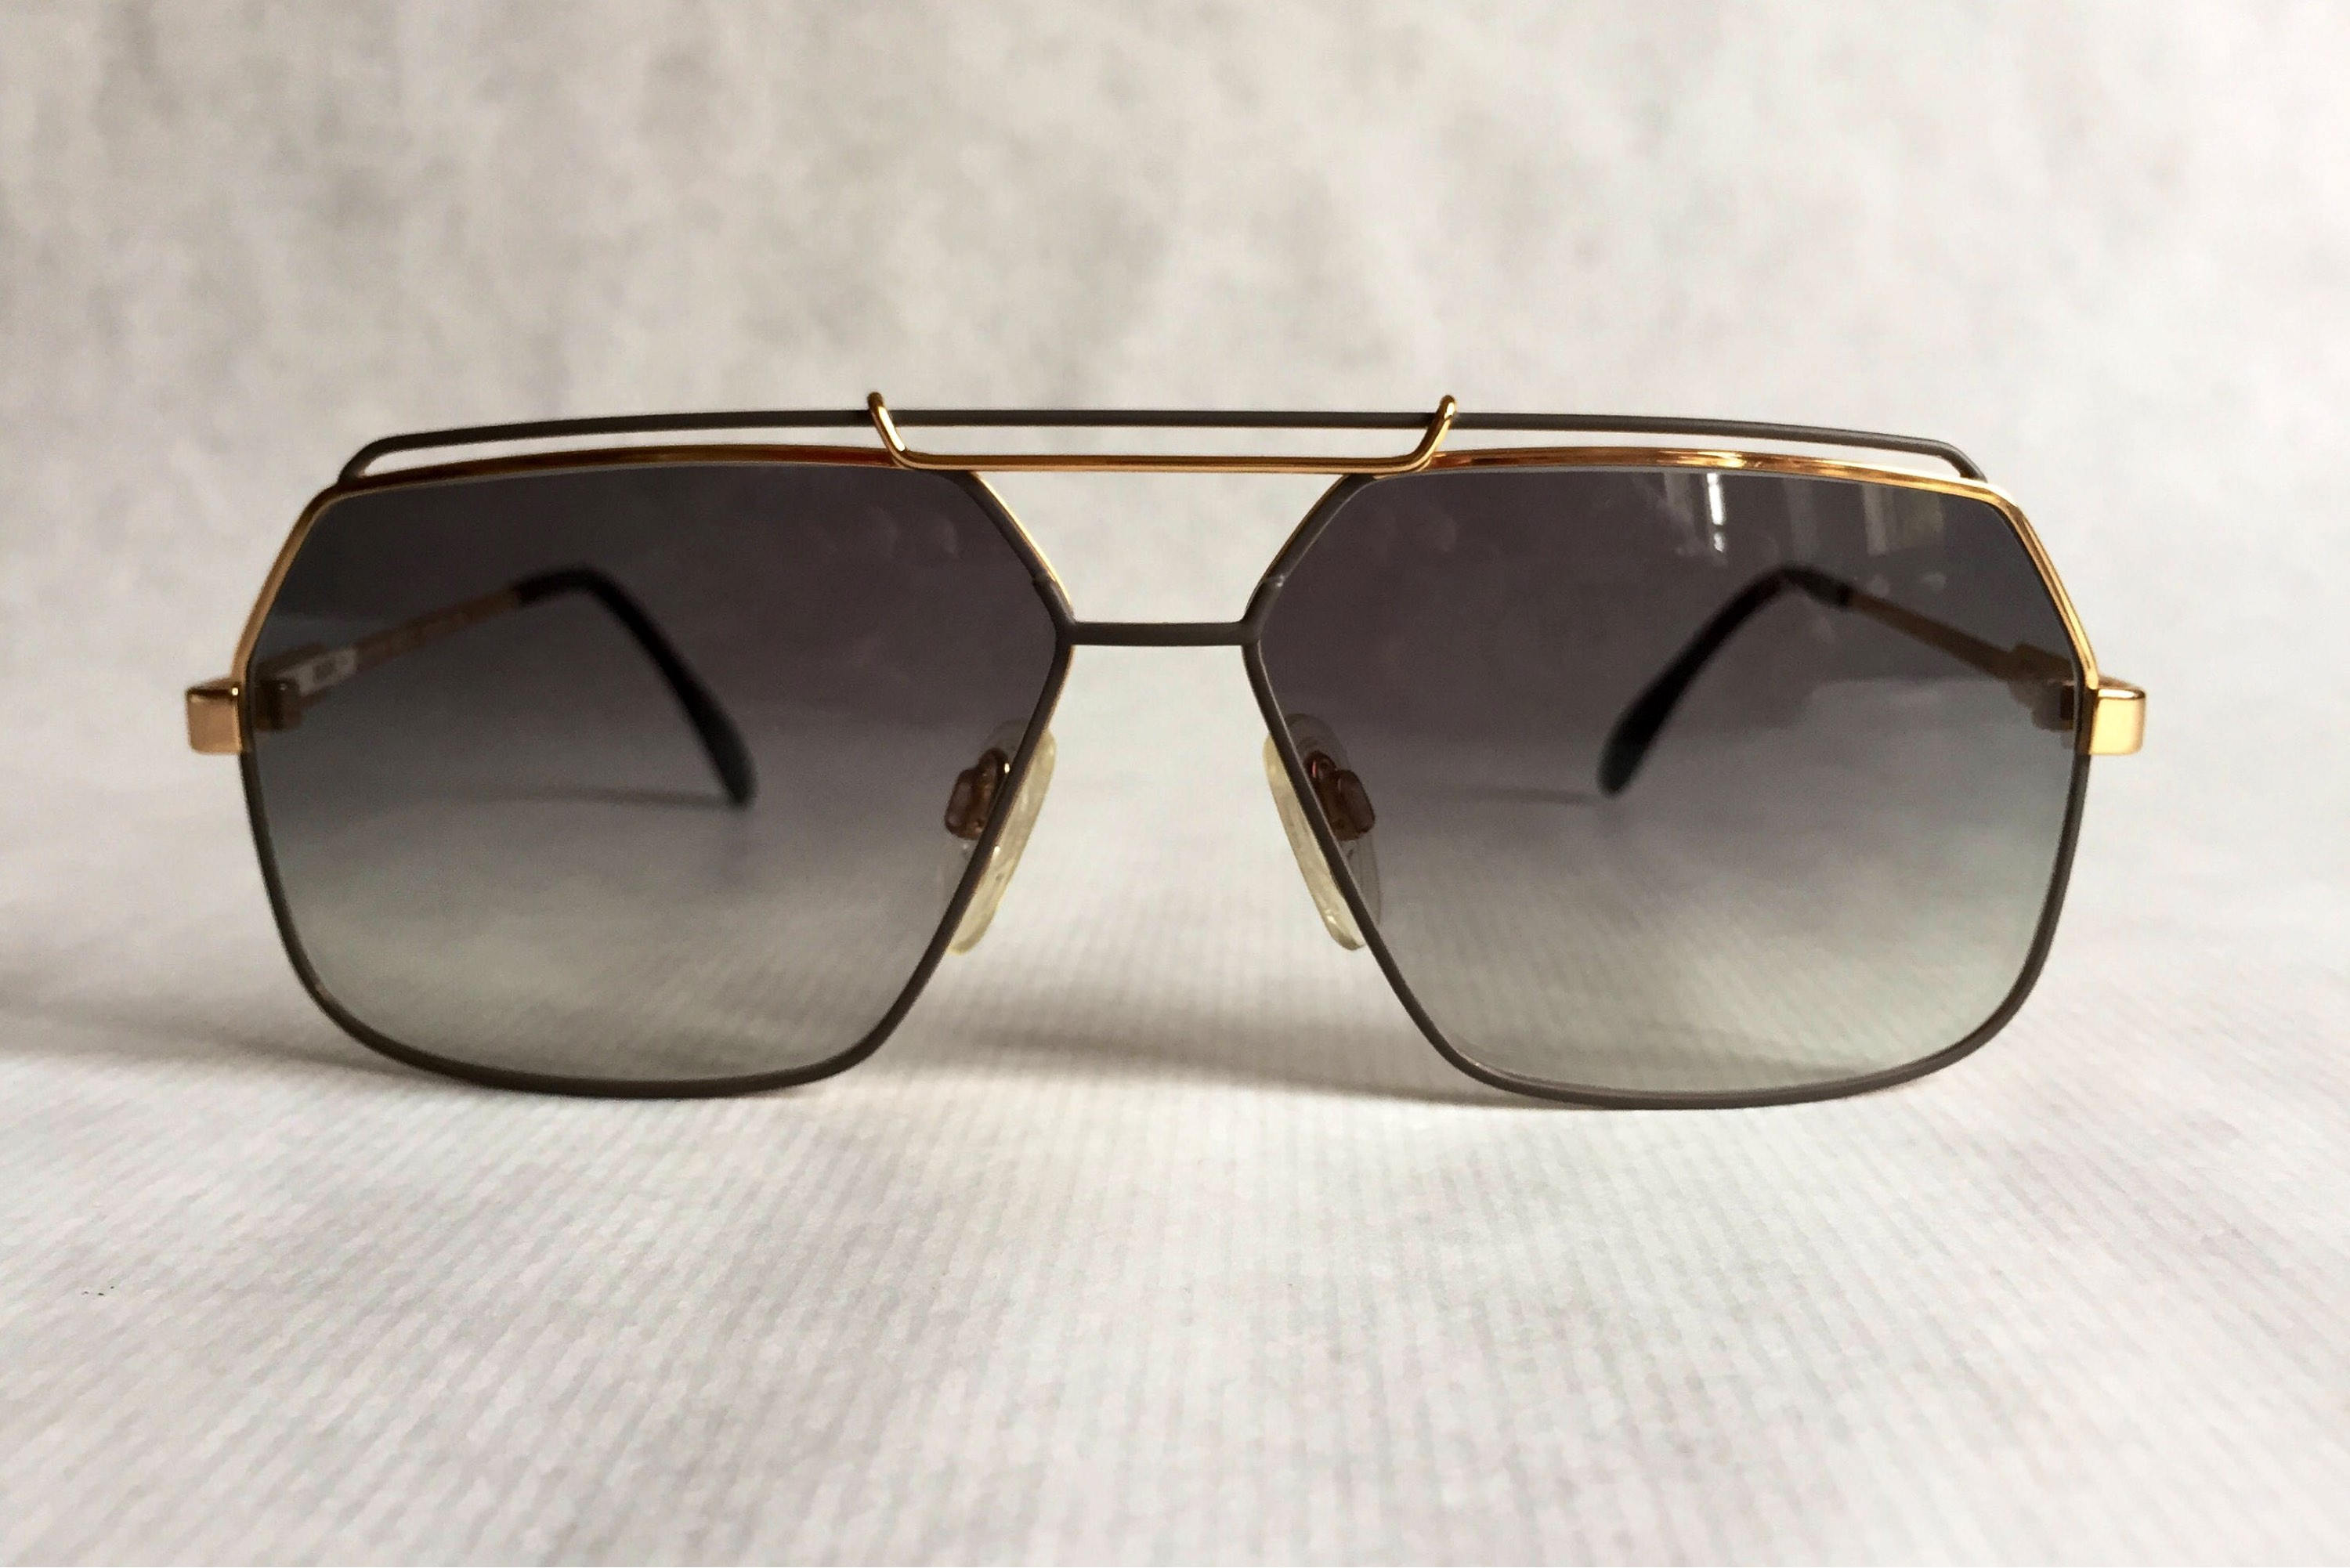 b14fb416049 Cazal 734 Col 303 Vintage Sunglasses Made in West Germany New Old Stock.  gallery photo ...